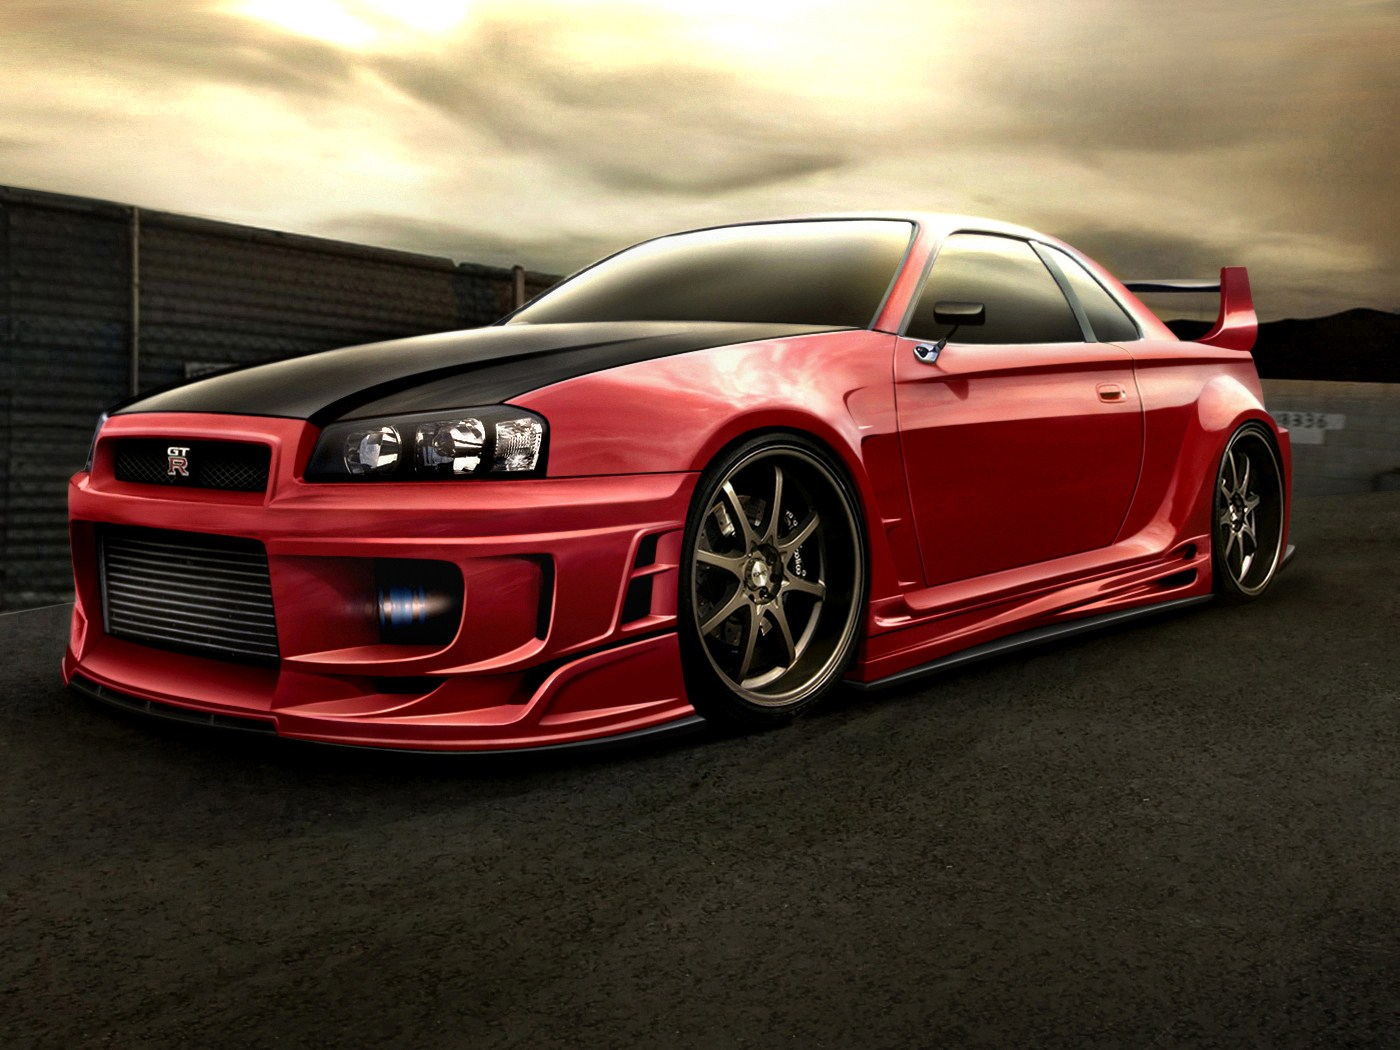 2014 nissan skyline gtr car review car wallpaper collections gallery view. Black Bedroom Furniture Sets. Home Design Ideas